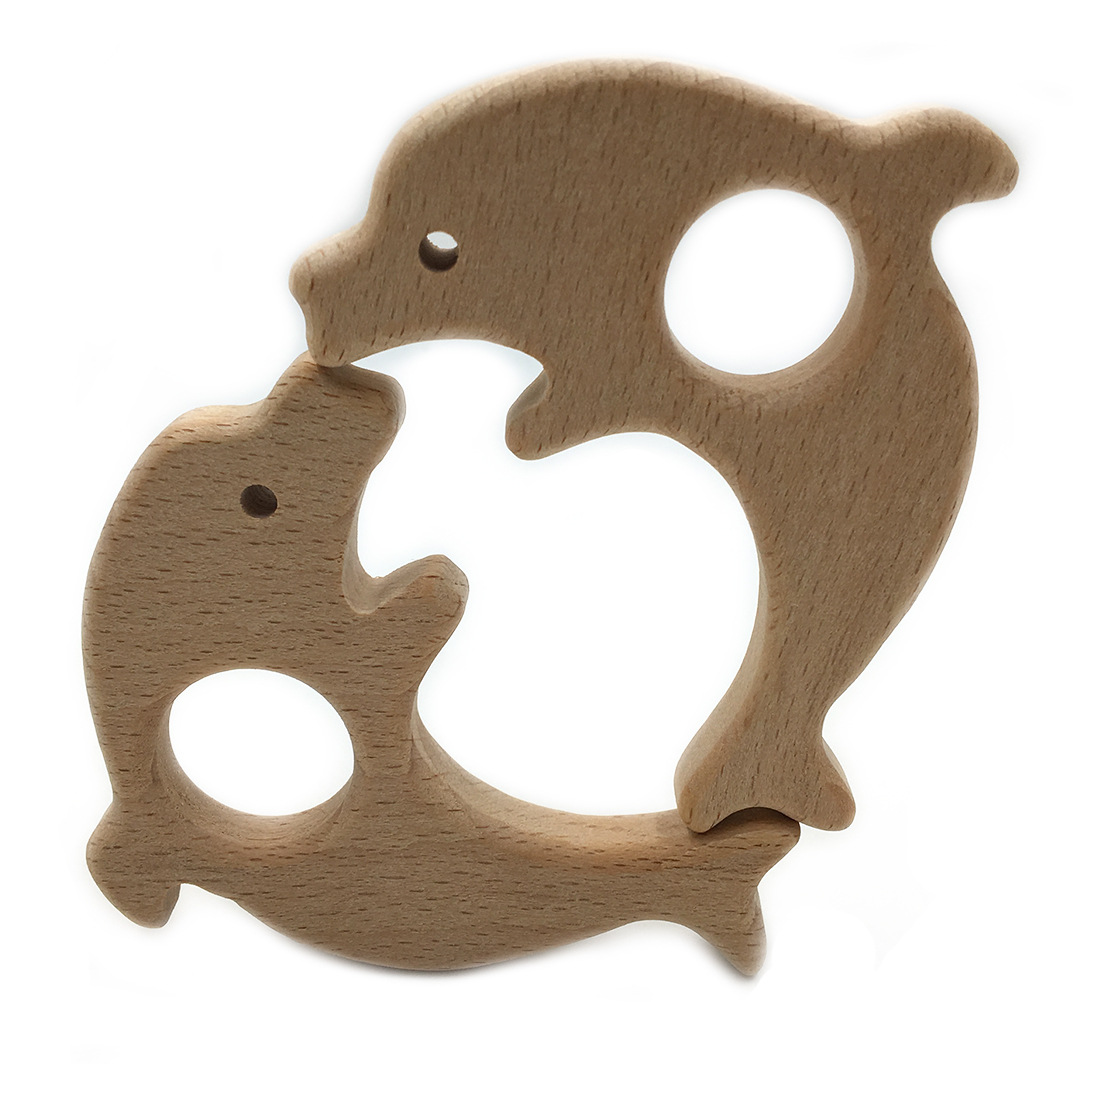 Organic Beech Wooden Dolphin Natural Handmade Wooden Teether DIY Wood Personalized Pendent Eco-Friendly Safe Baby Teether Toys